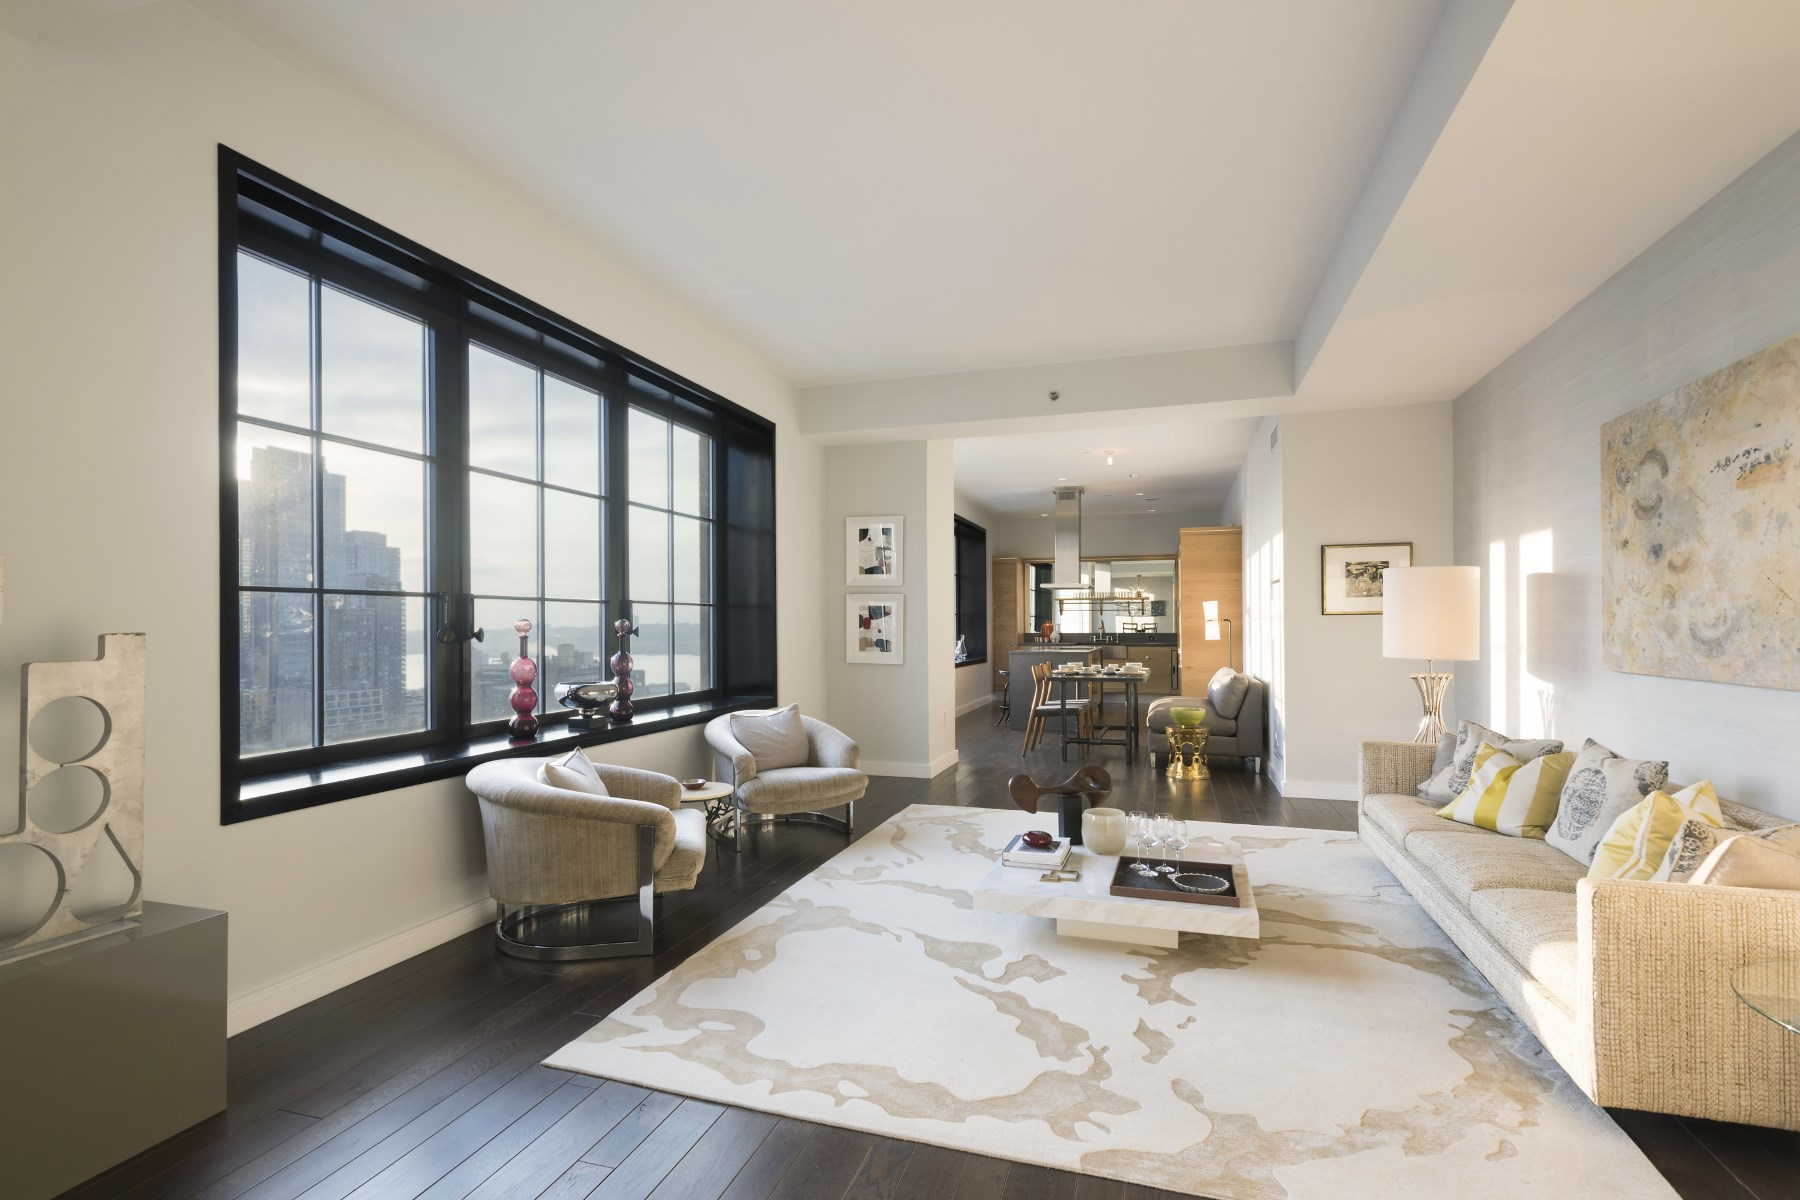 Condominium for Sale at 425 West 50th Street, PH A 425 West 50th Street PH A New York, New York, 10019 United States